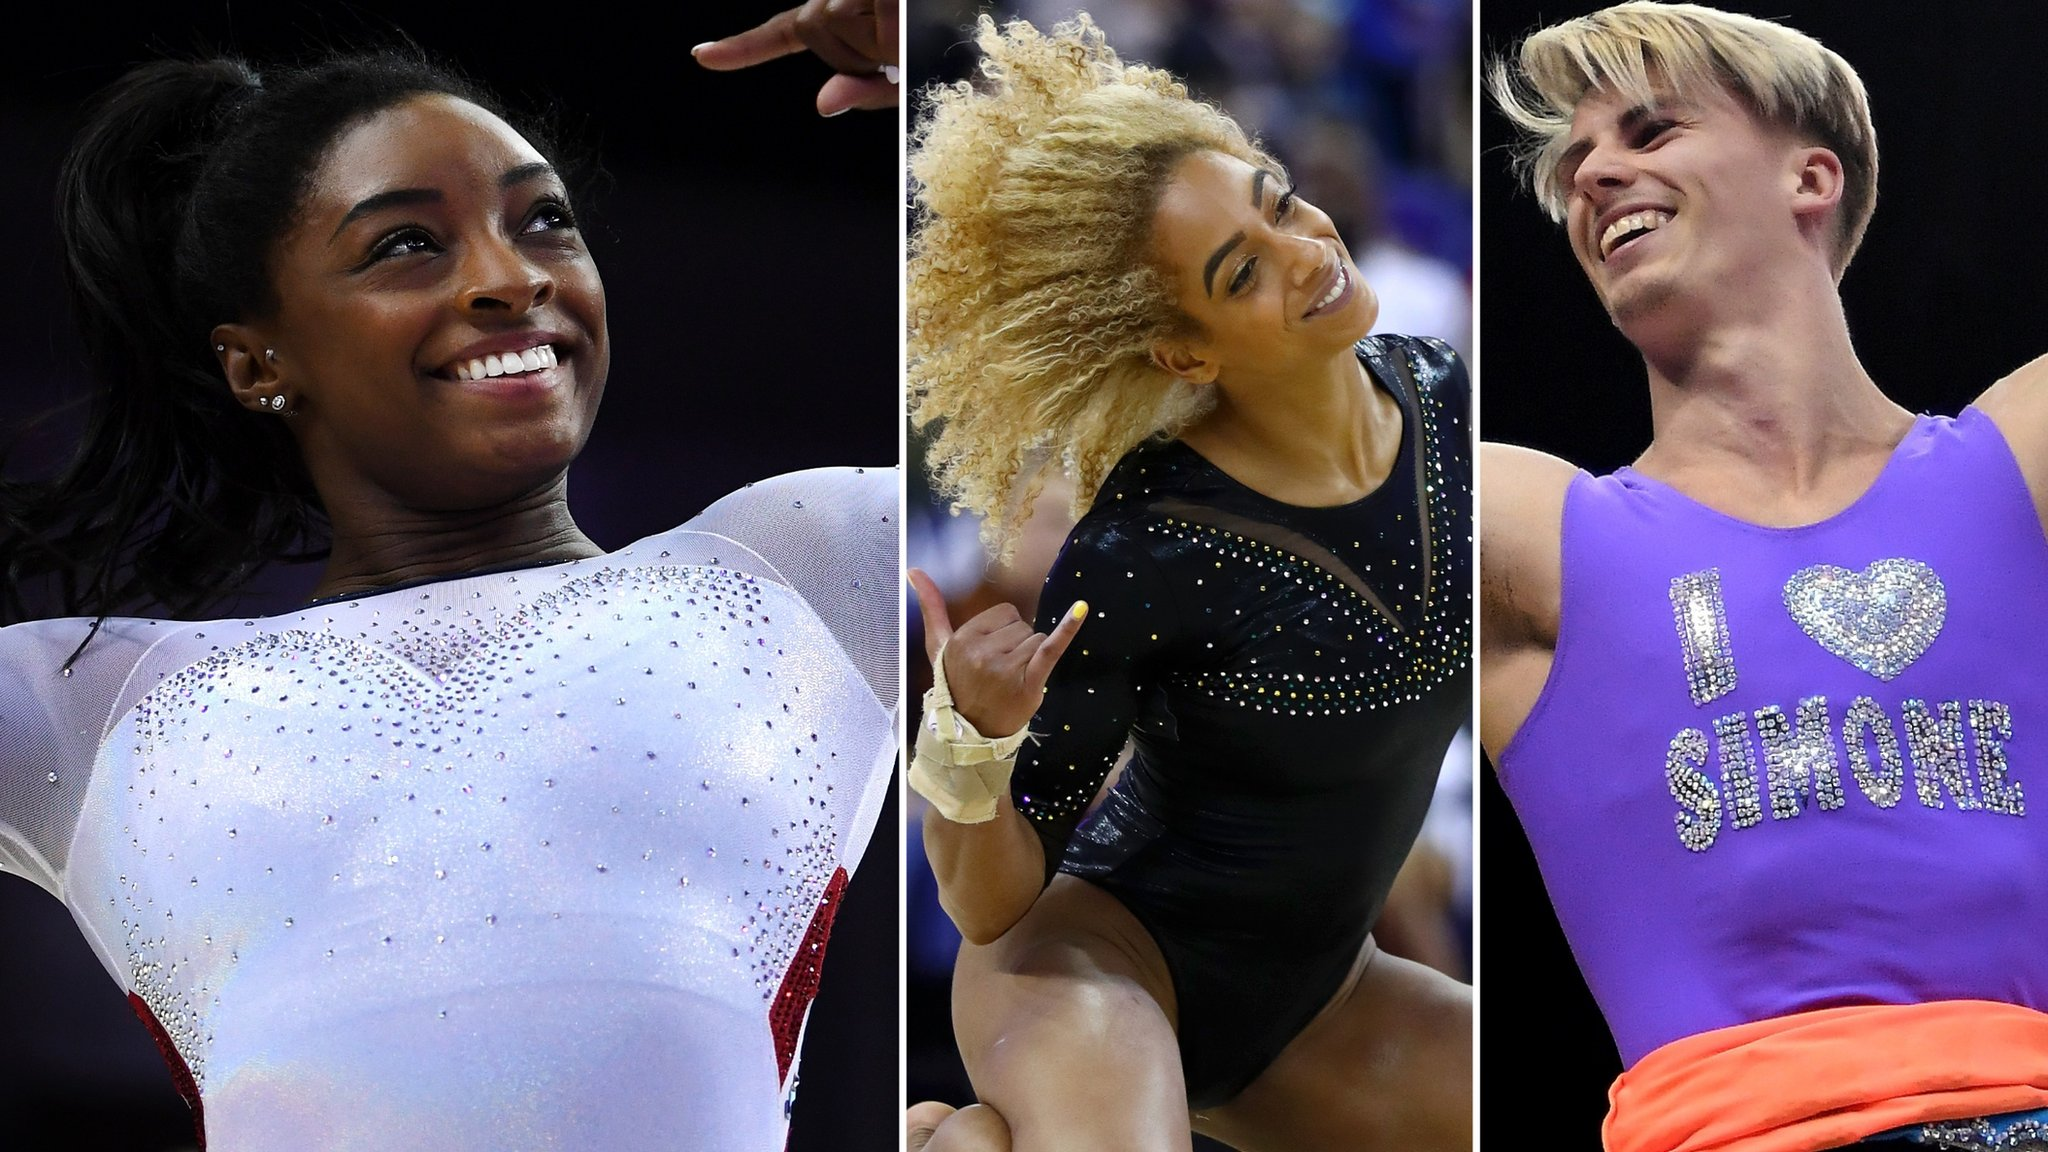 Flossing, funky chicken & a golden buzzer - does elite gymnastics need to be more fun?